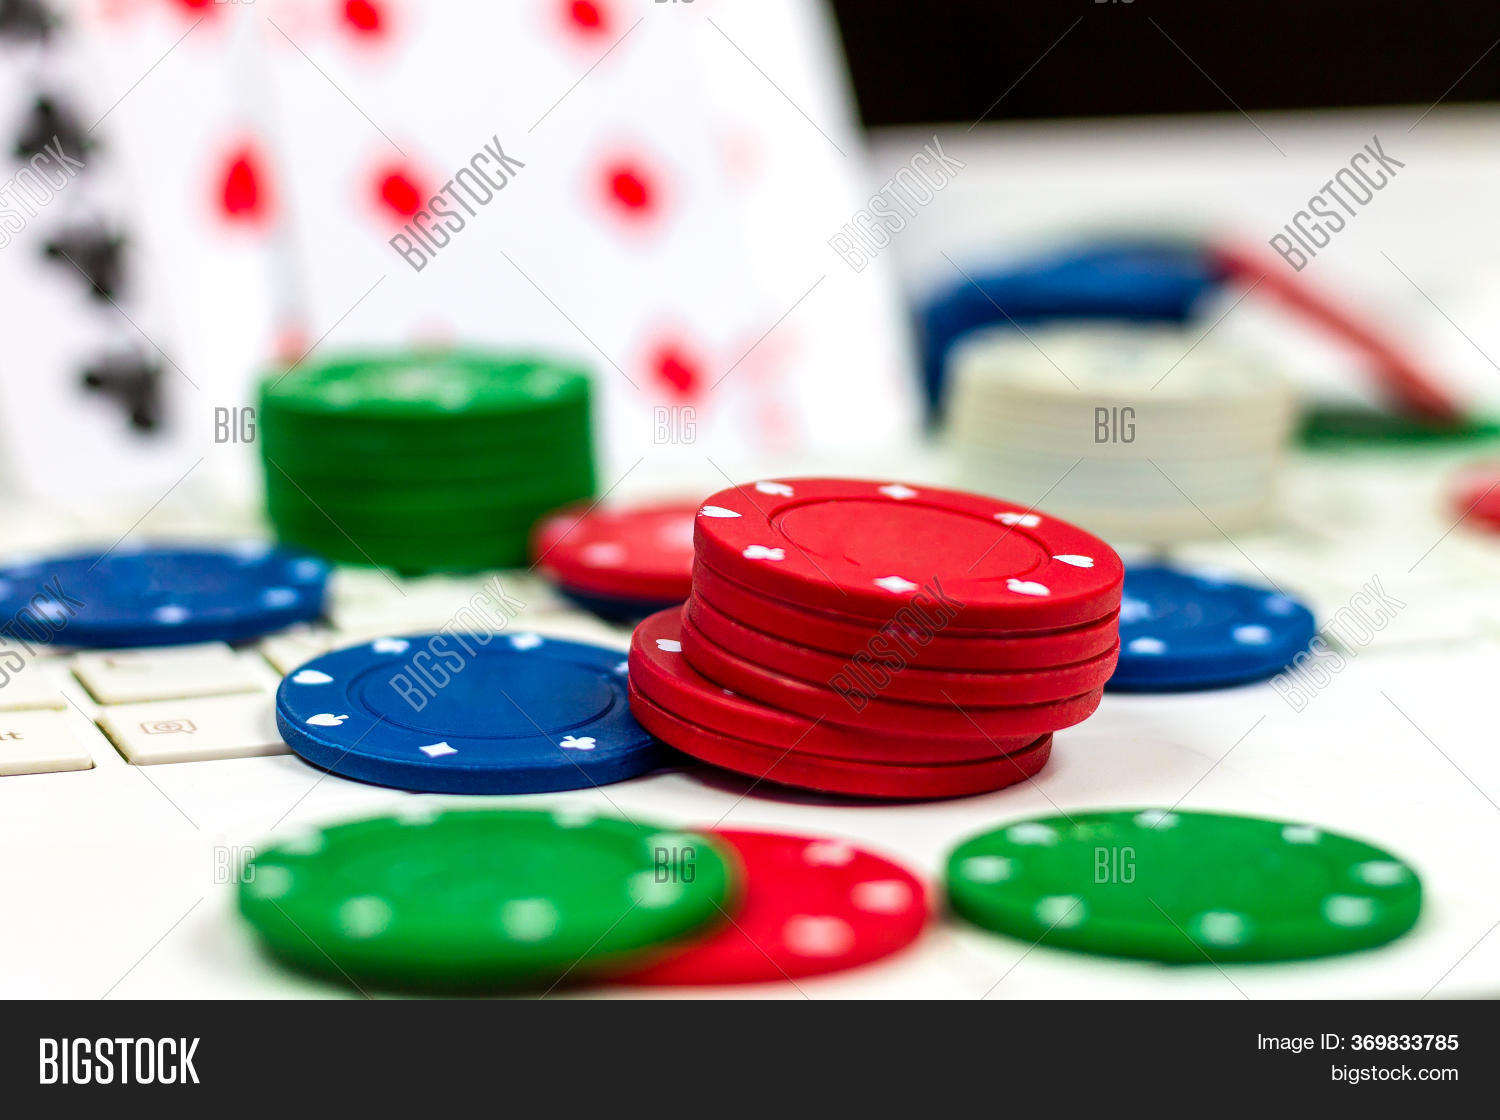 Betting games id 10 liner betting pool